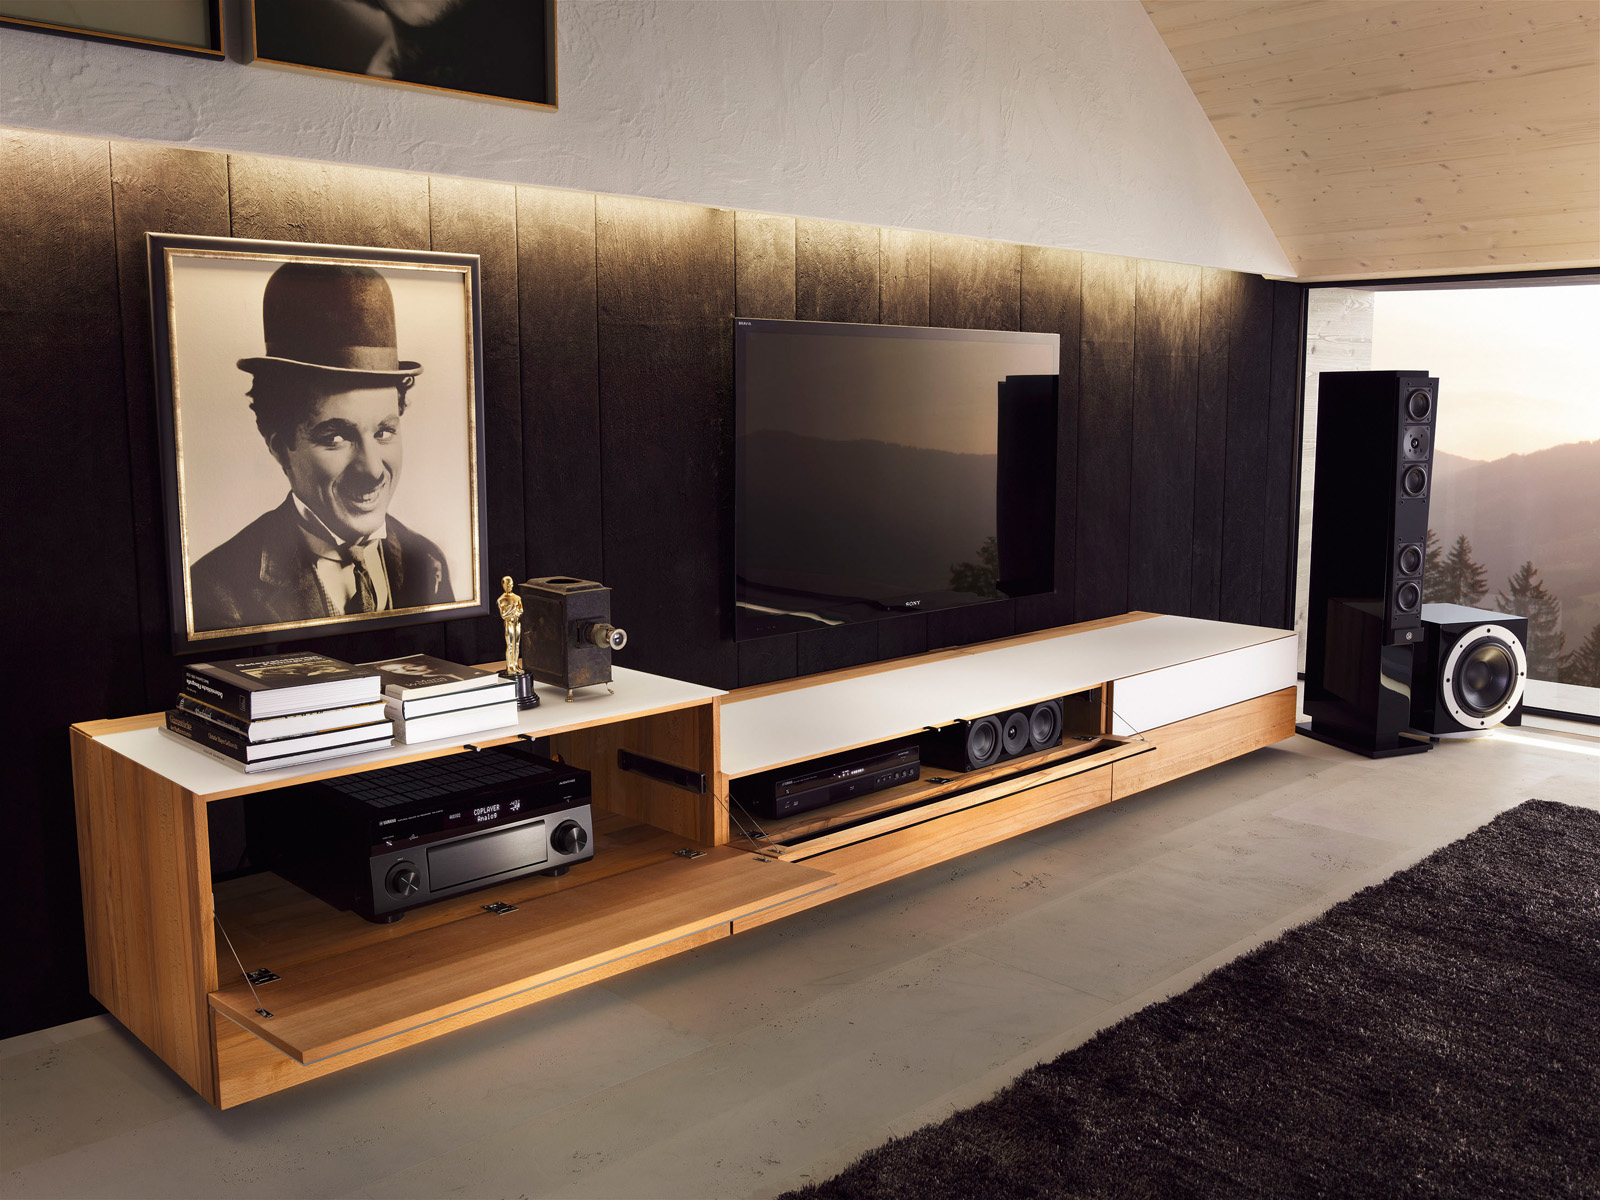 cubus tv wandkasten noordkaap meubelen. Black Bedroom Furniture Sets. Home Design Ideas